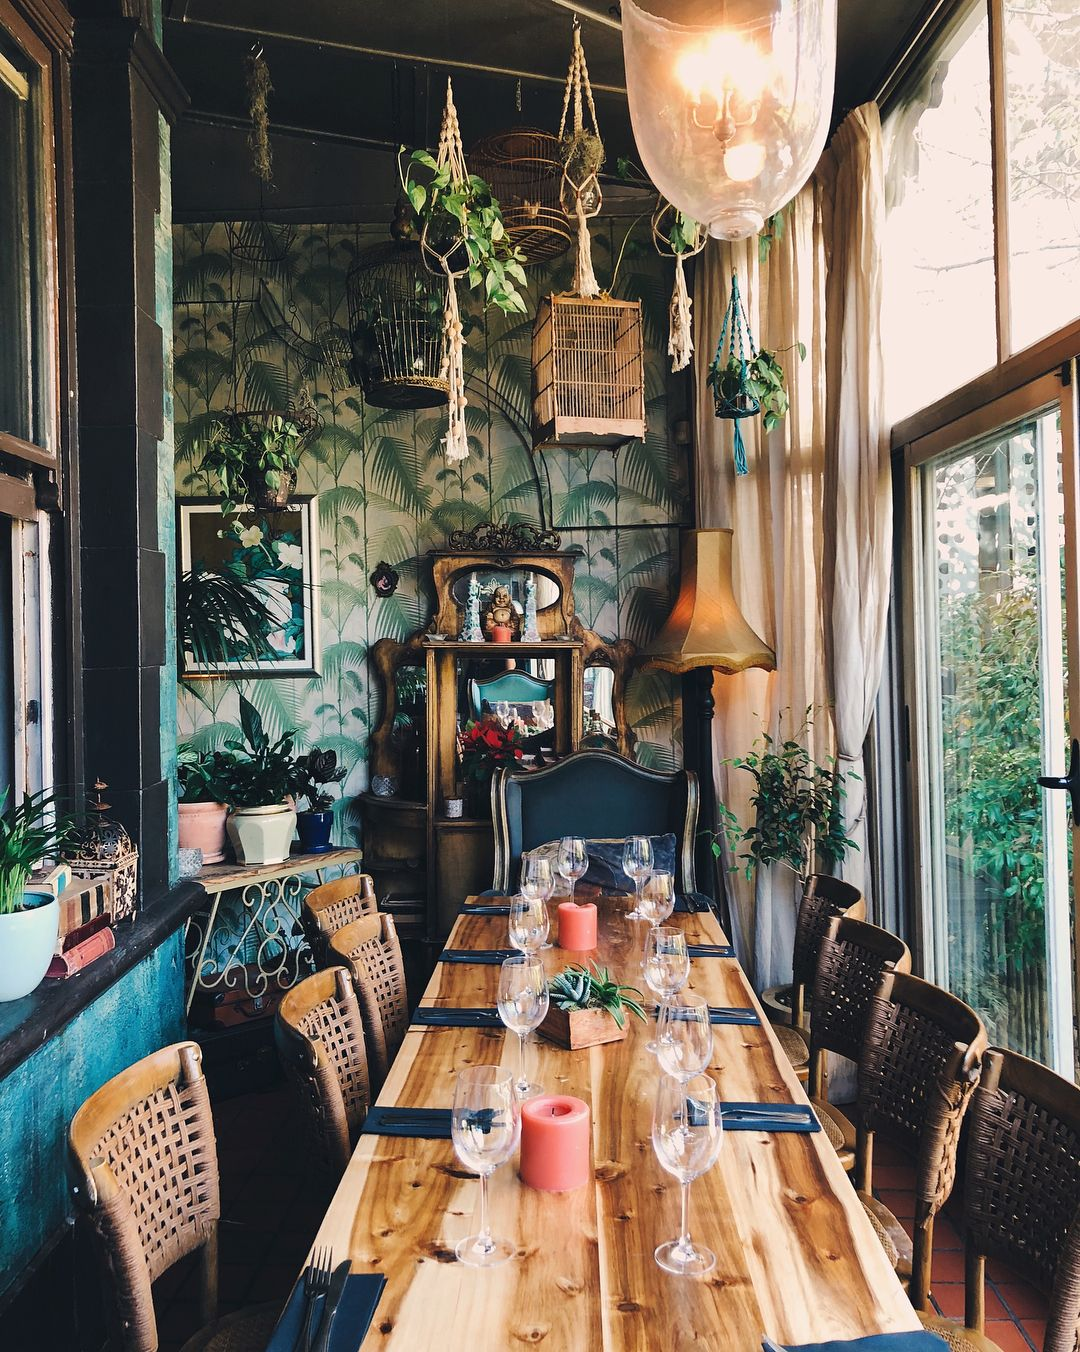 Kloof Street House feels like dining in an old Victorian